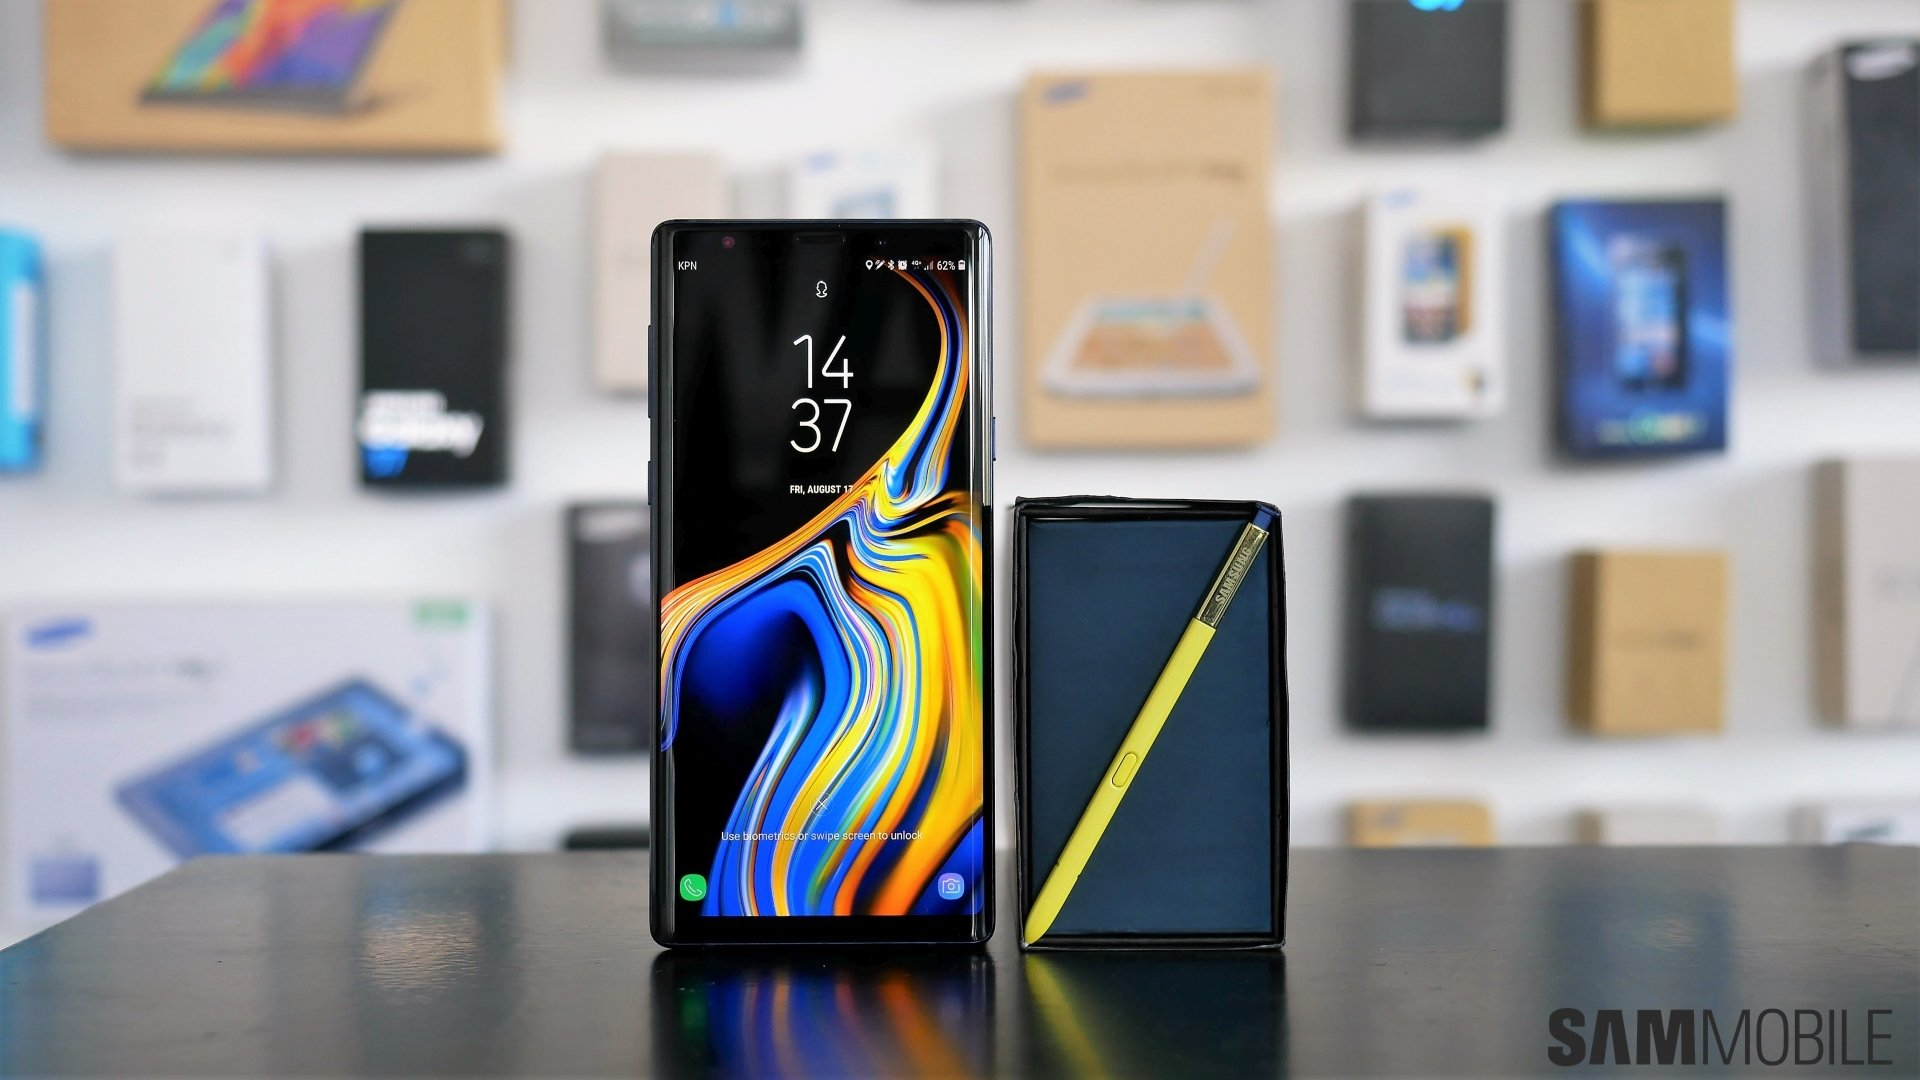 Set A Live Wallpaper On Your Galaxy Note 9 For Added Visual Flair Sammobile